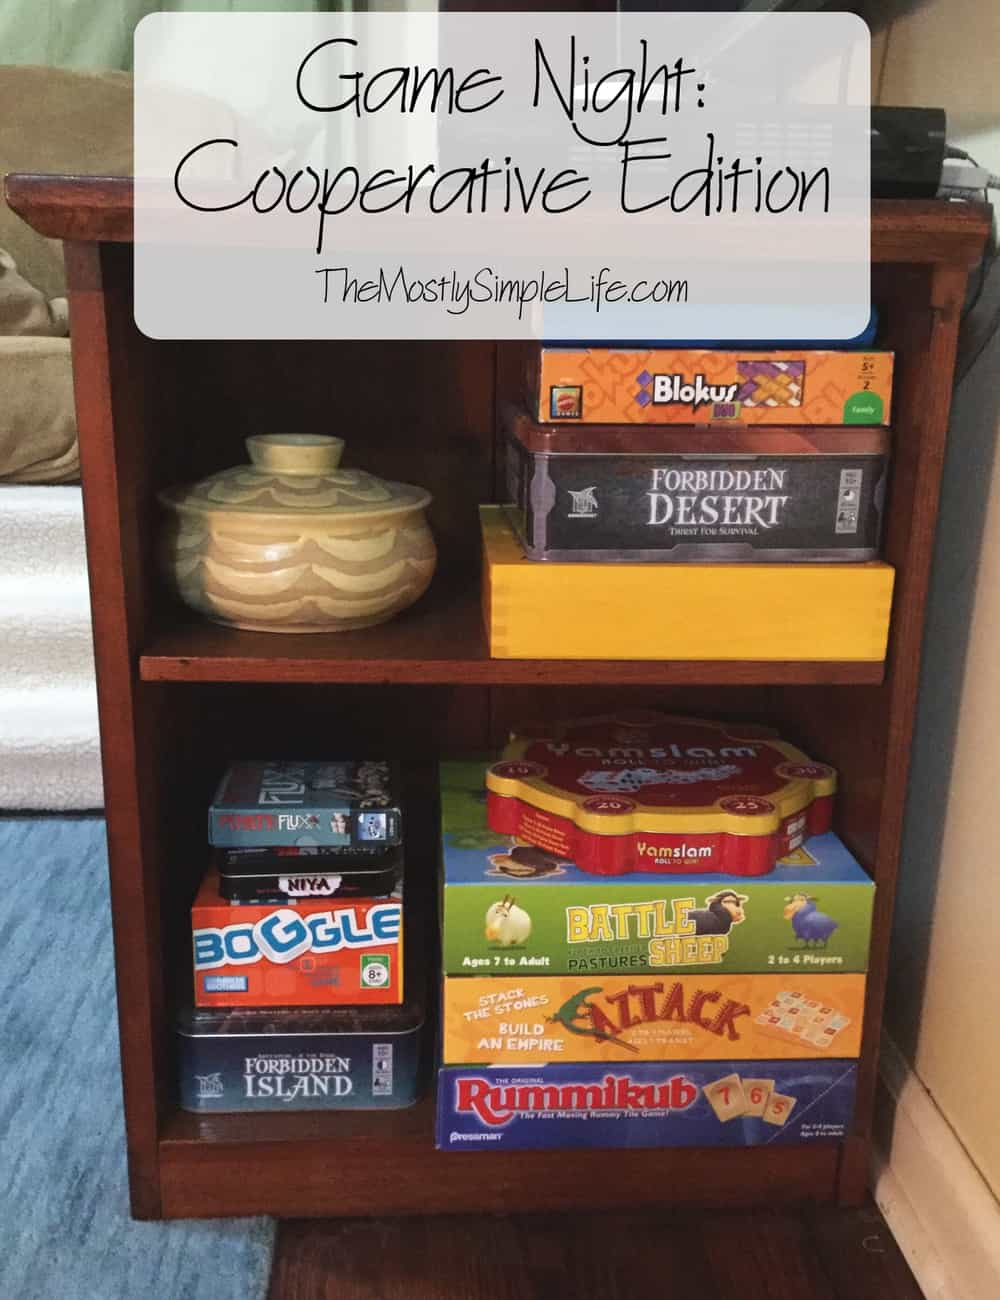 Game Night: Cooperative Edition.